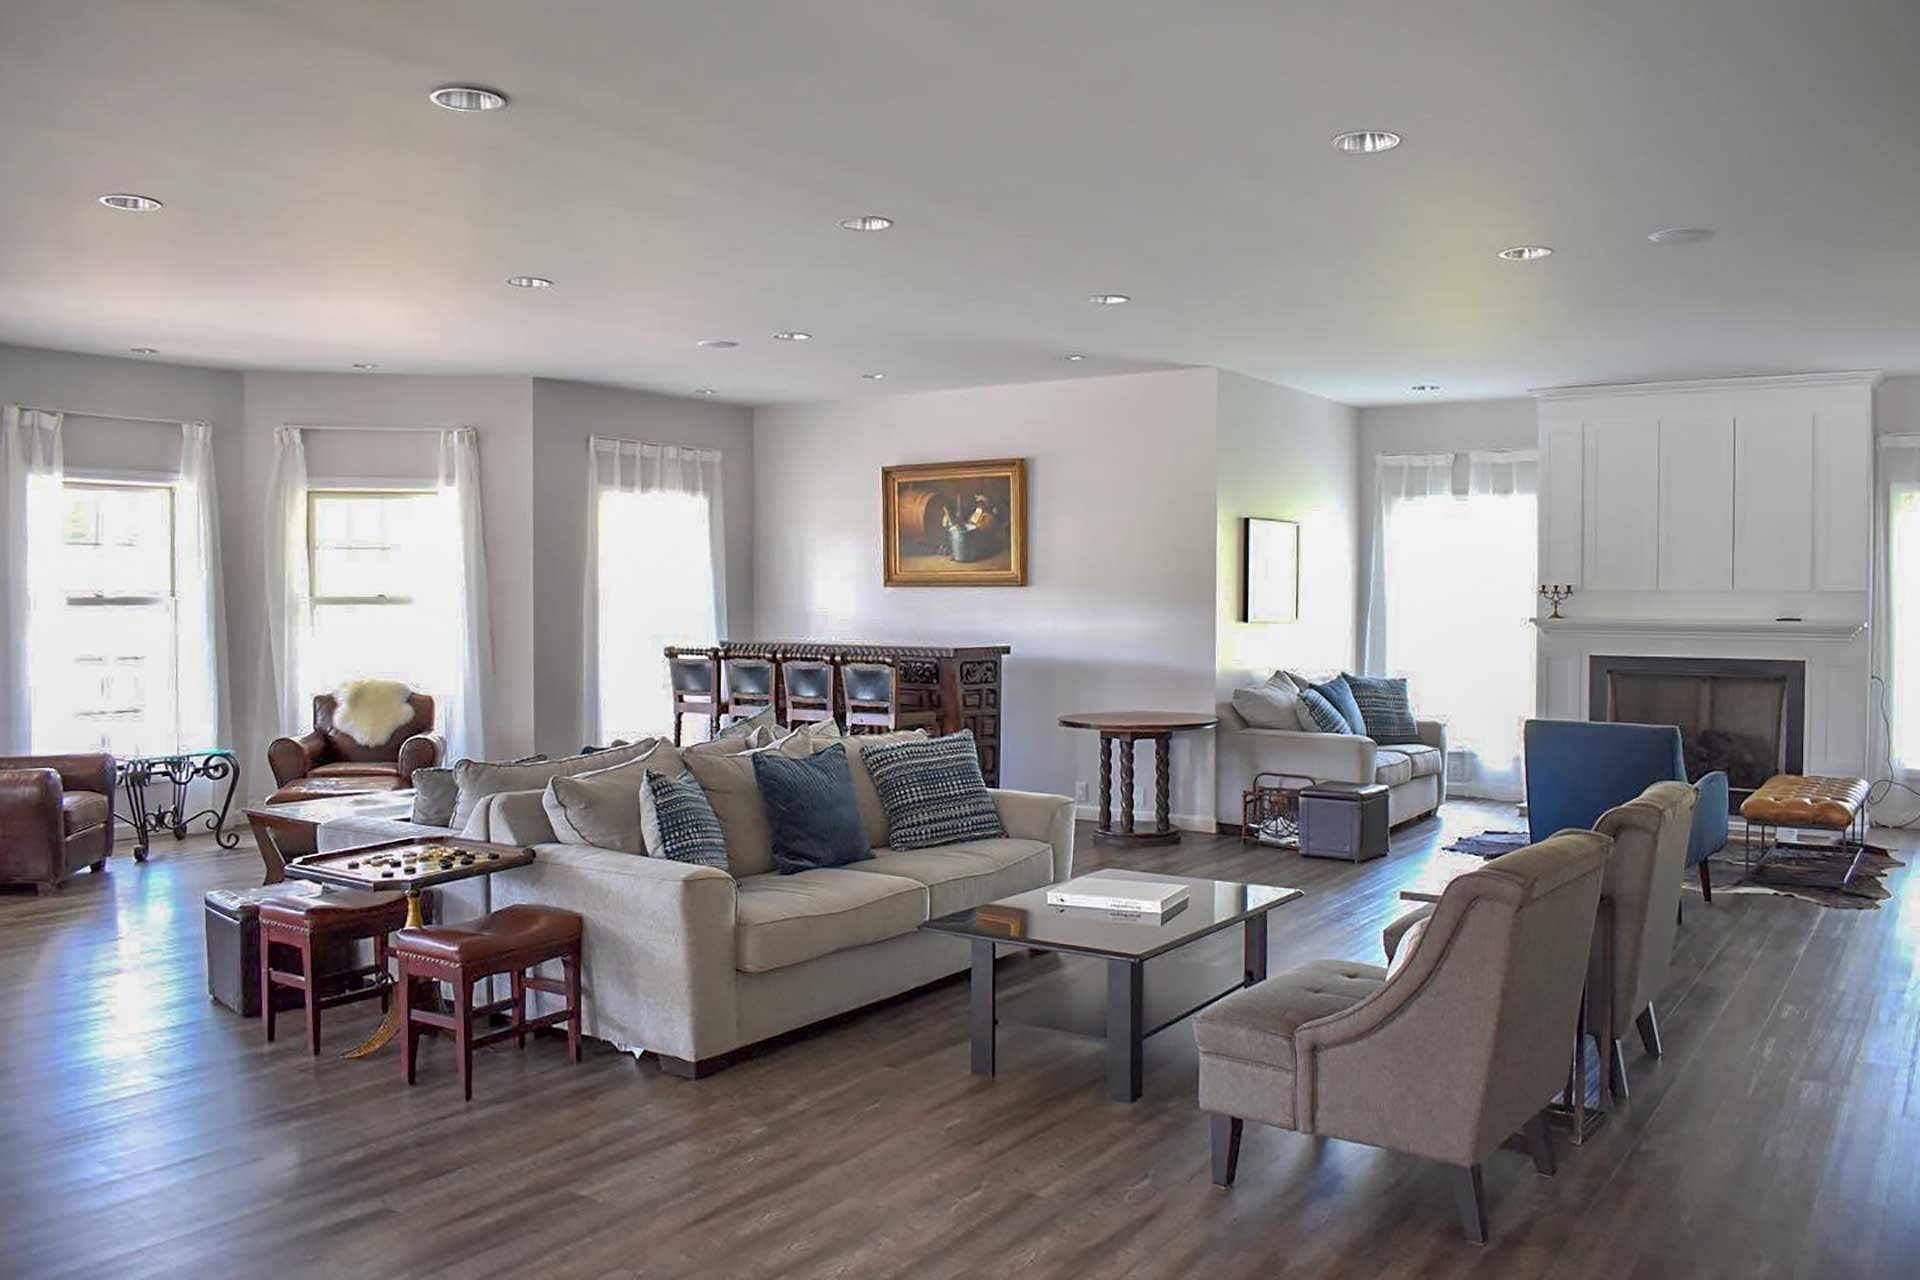 The spacious home provides plenty of room for your large group to spread out.